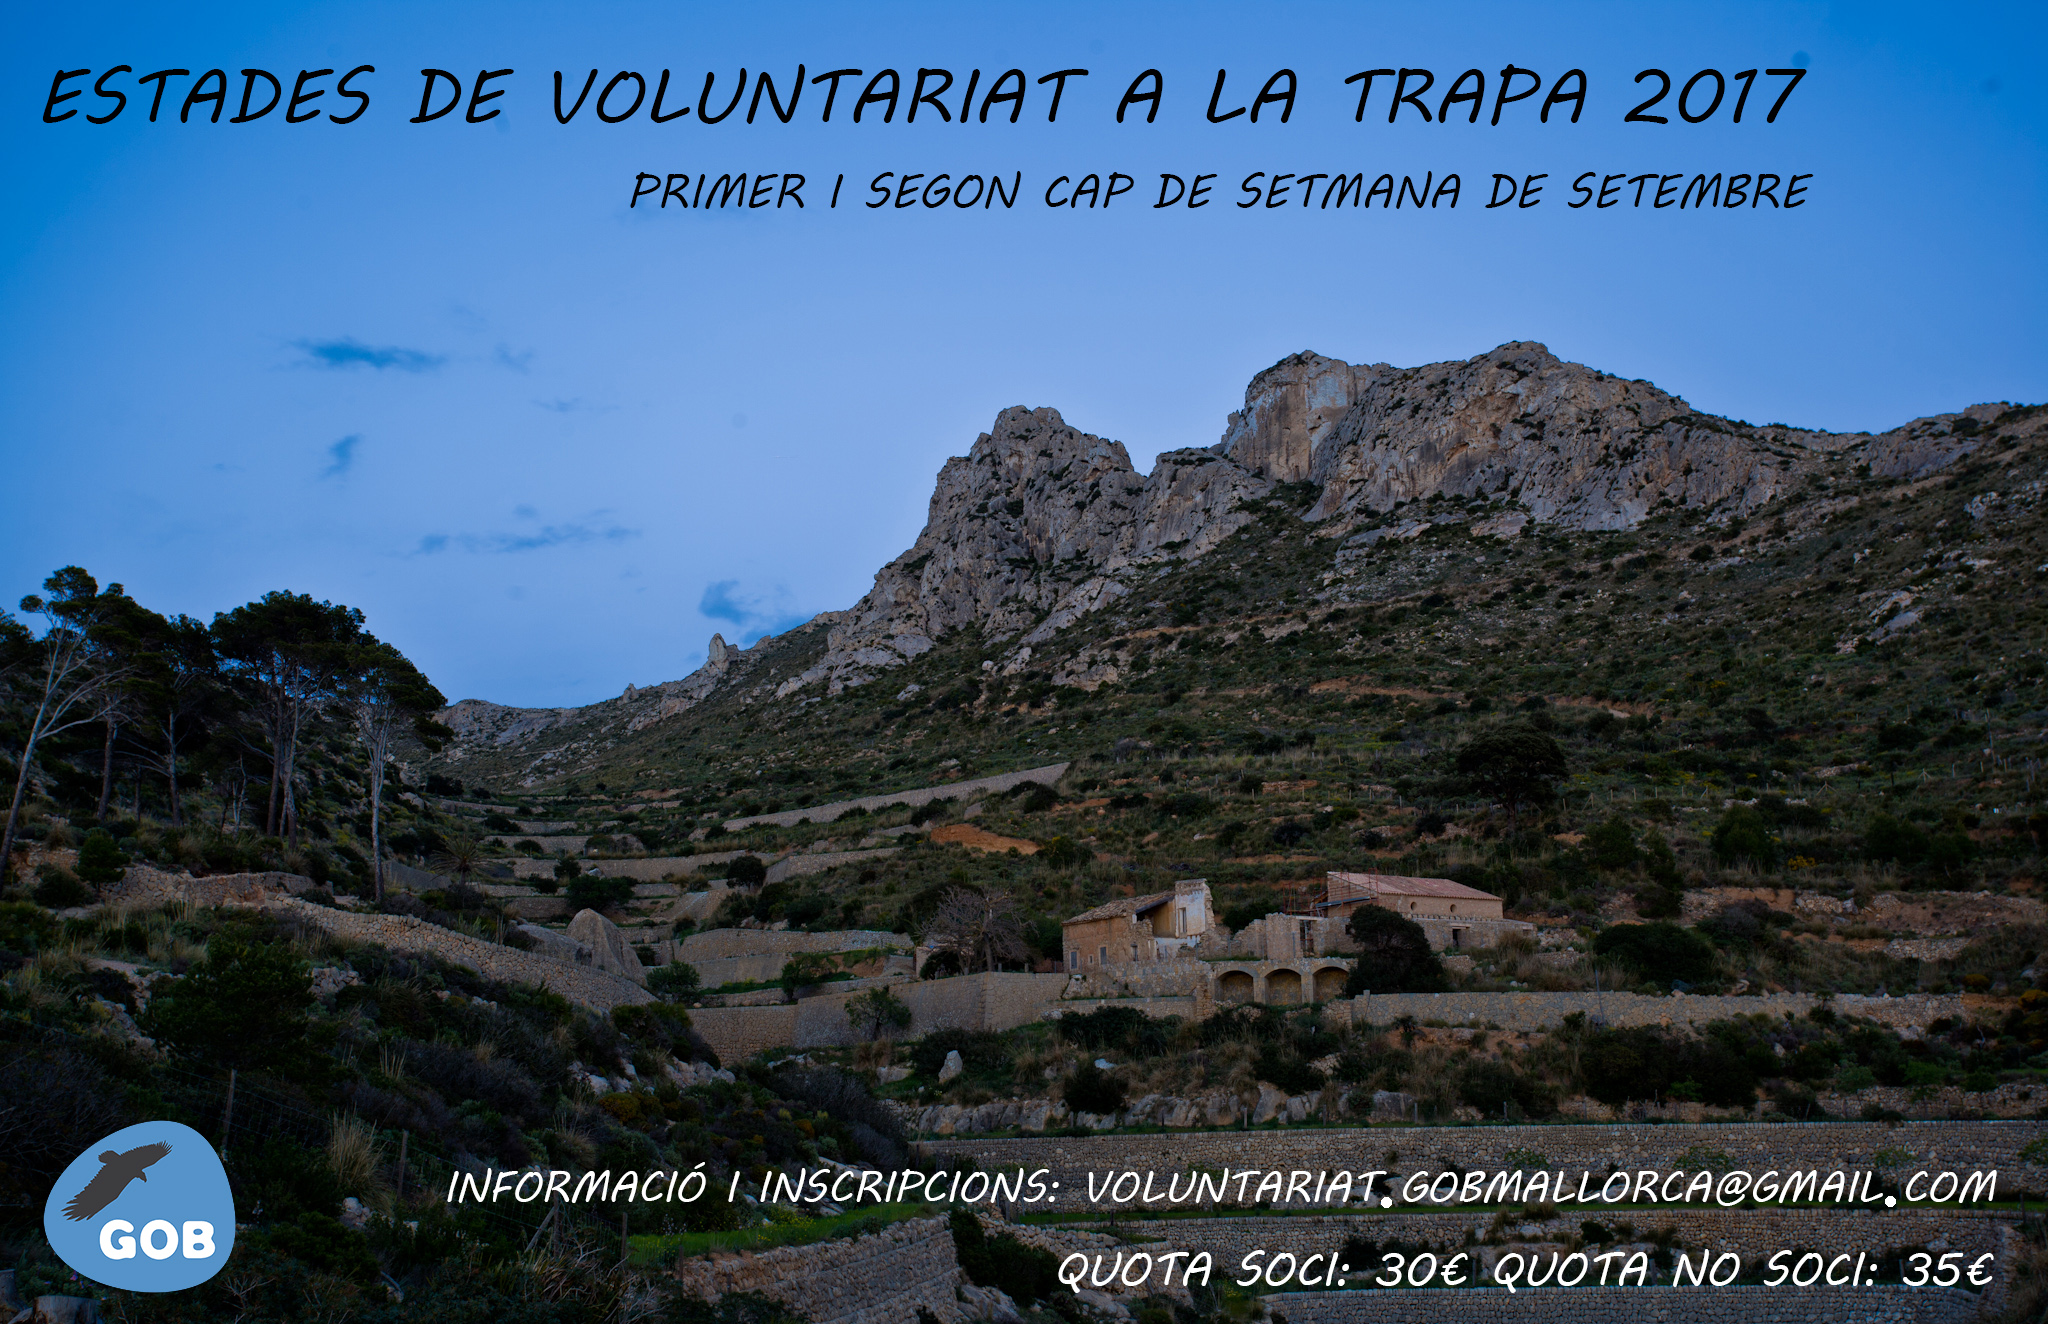 Estades de voluntariat a La Trapa 2017